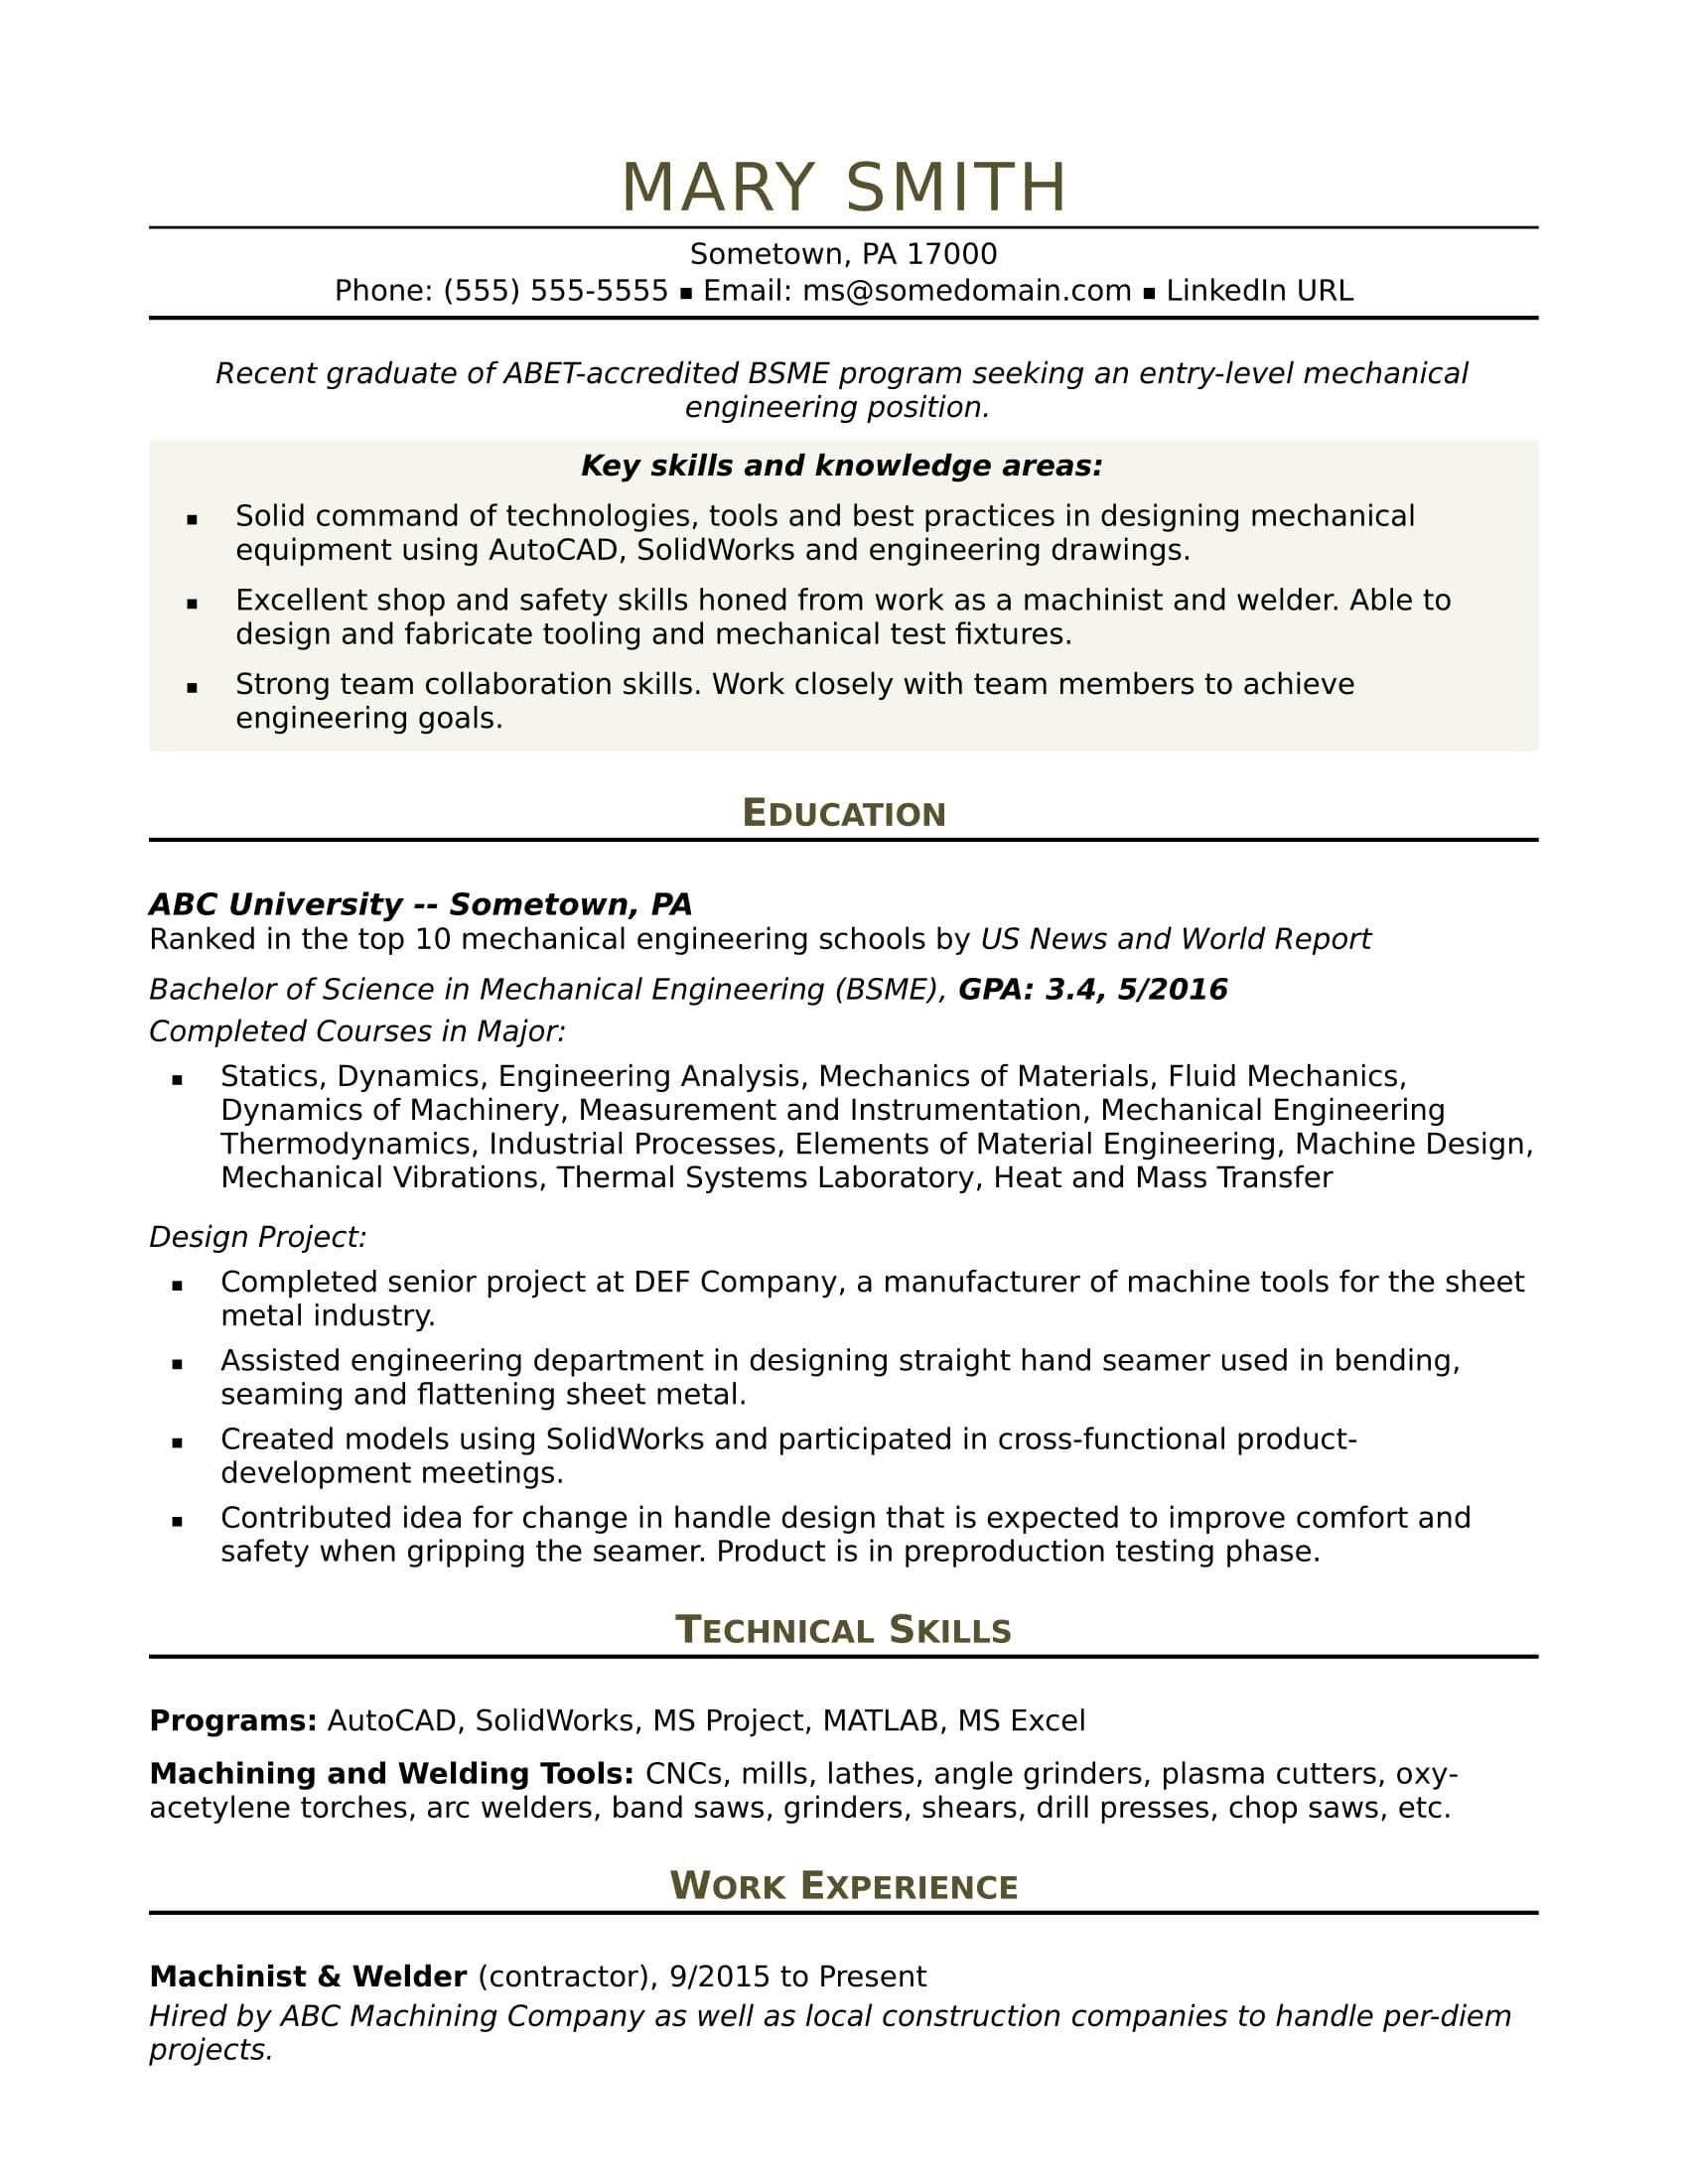 Systems Engineer Resume Examples Interesting Resume Examples Mechanical Engineer  Cv And Resume Examples  Pinterest